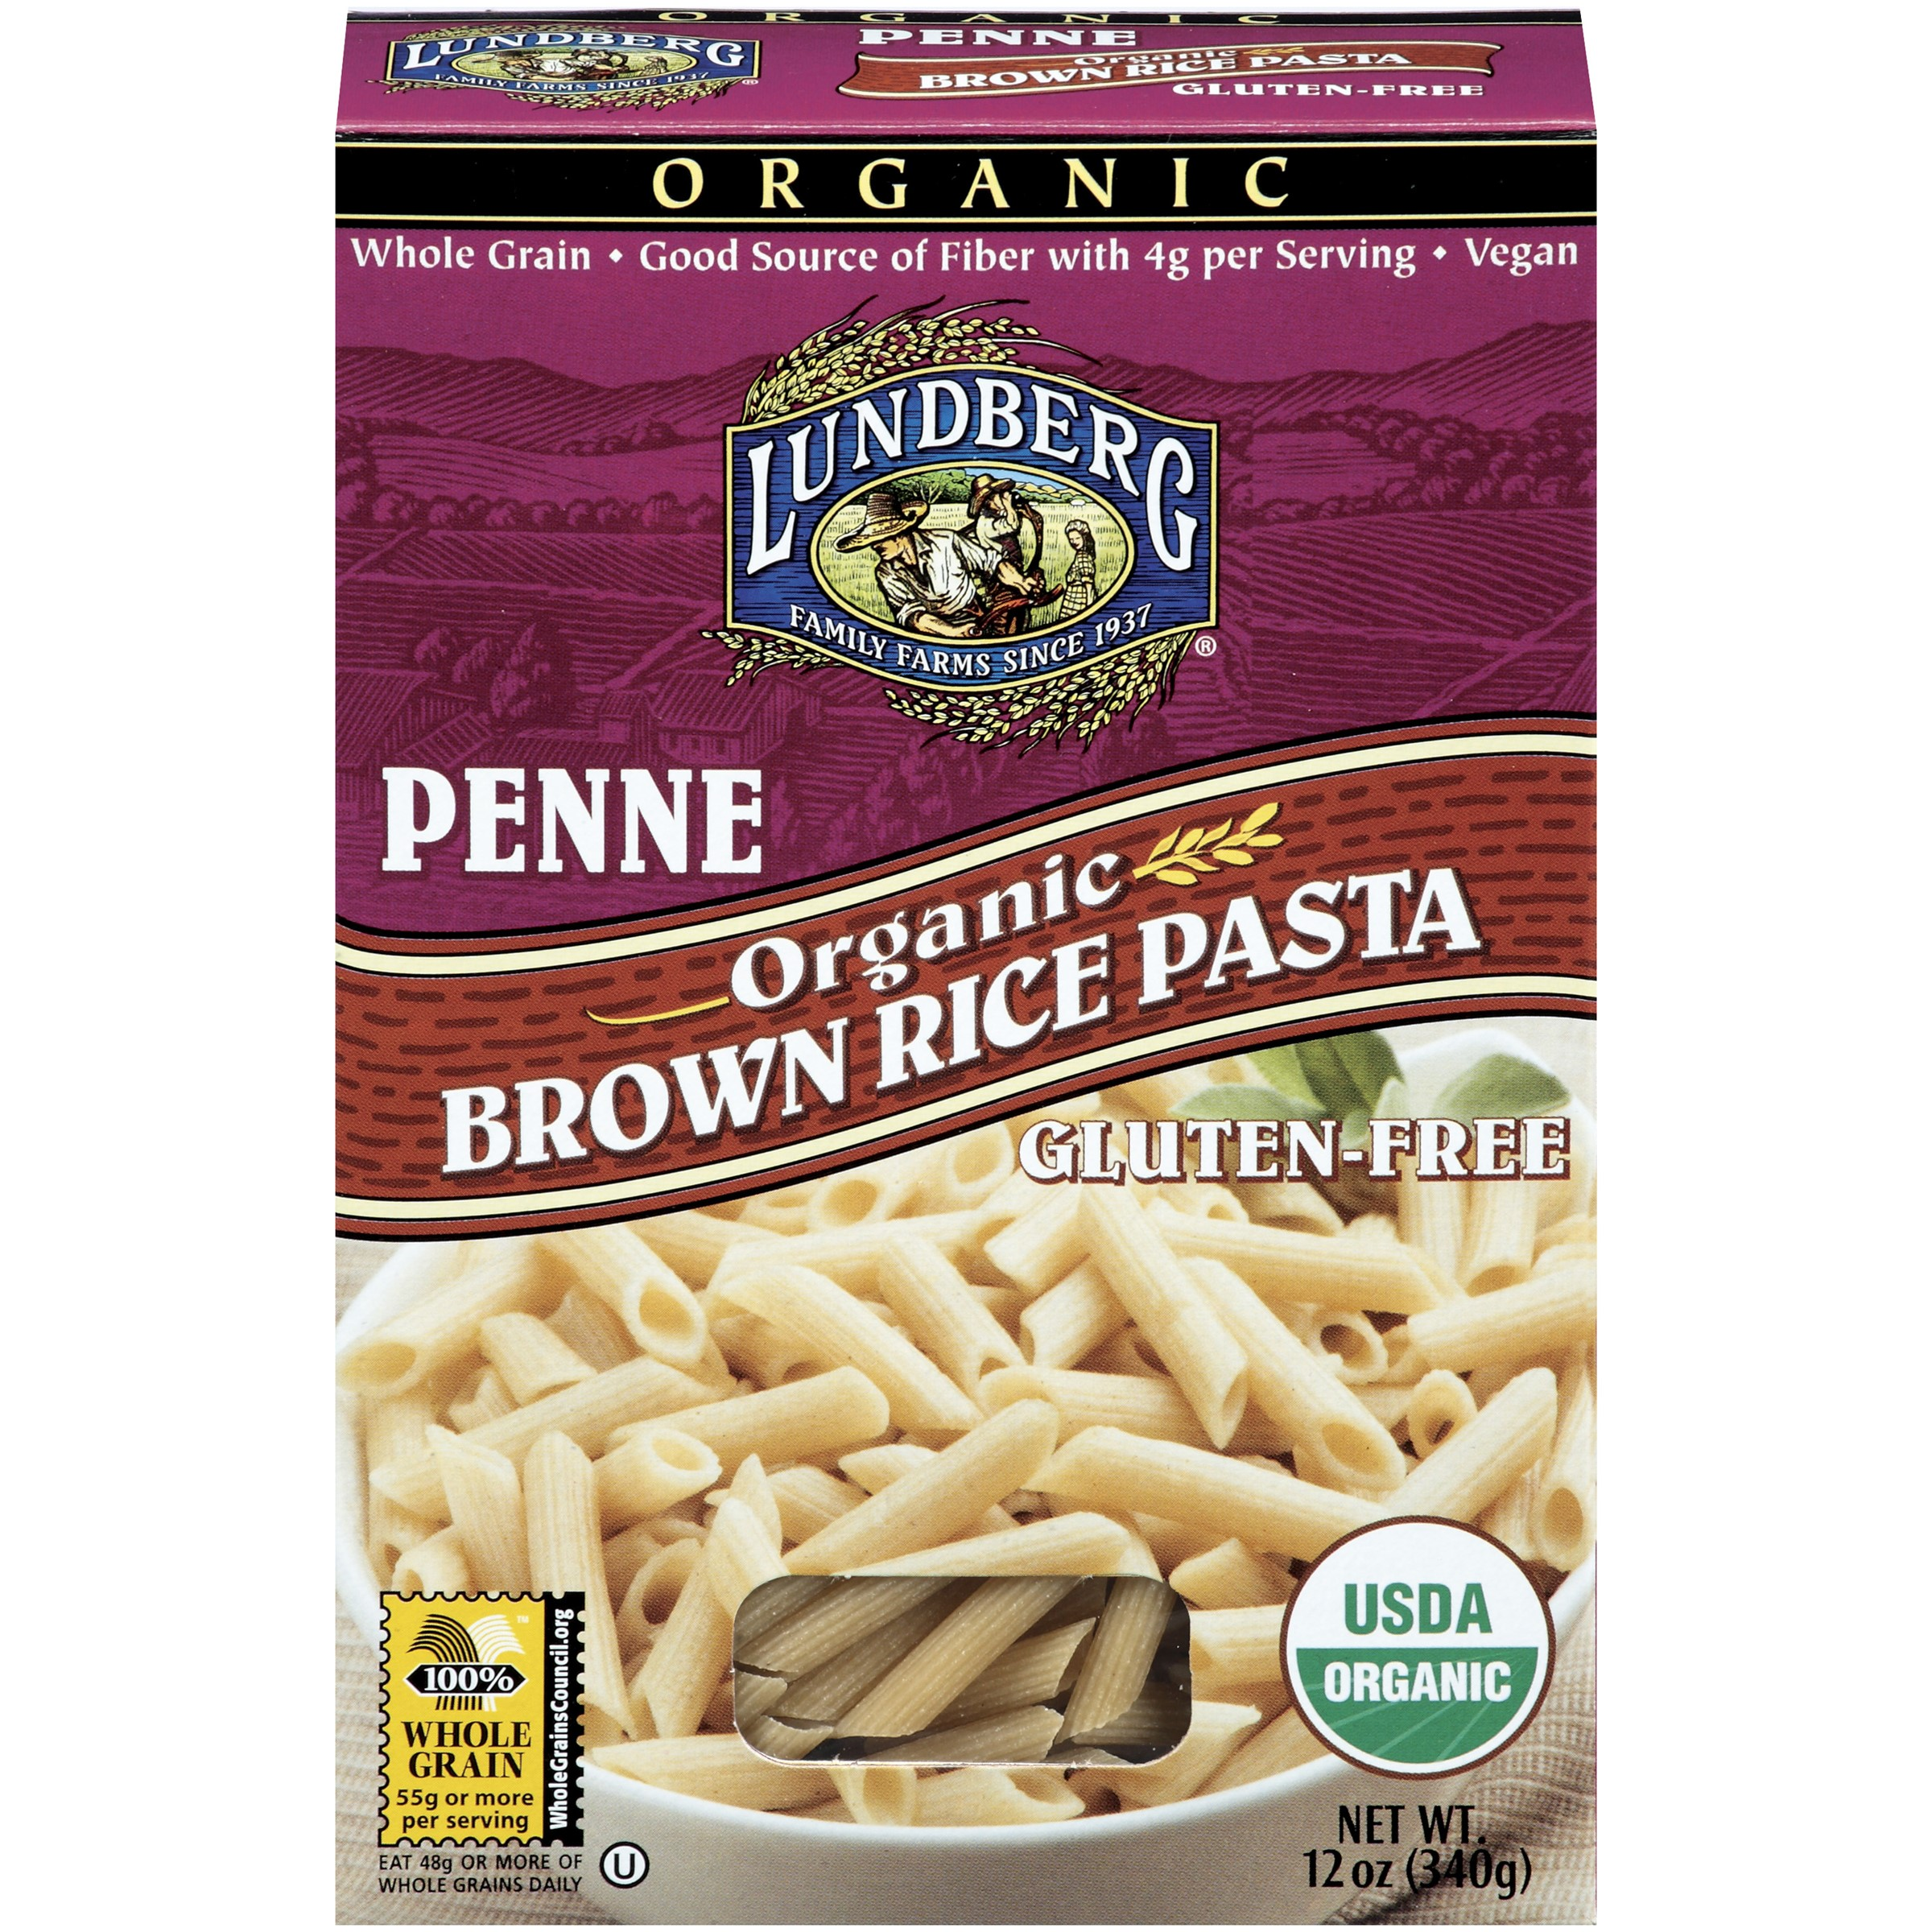 Lundberg Organic Brown Rice Pasta Penne 12 Oz - Vegan